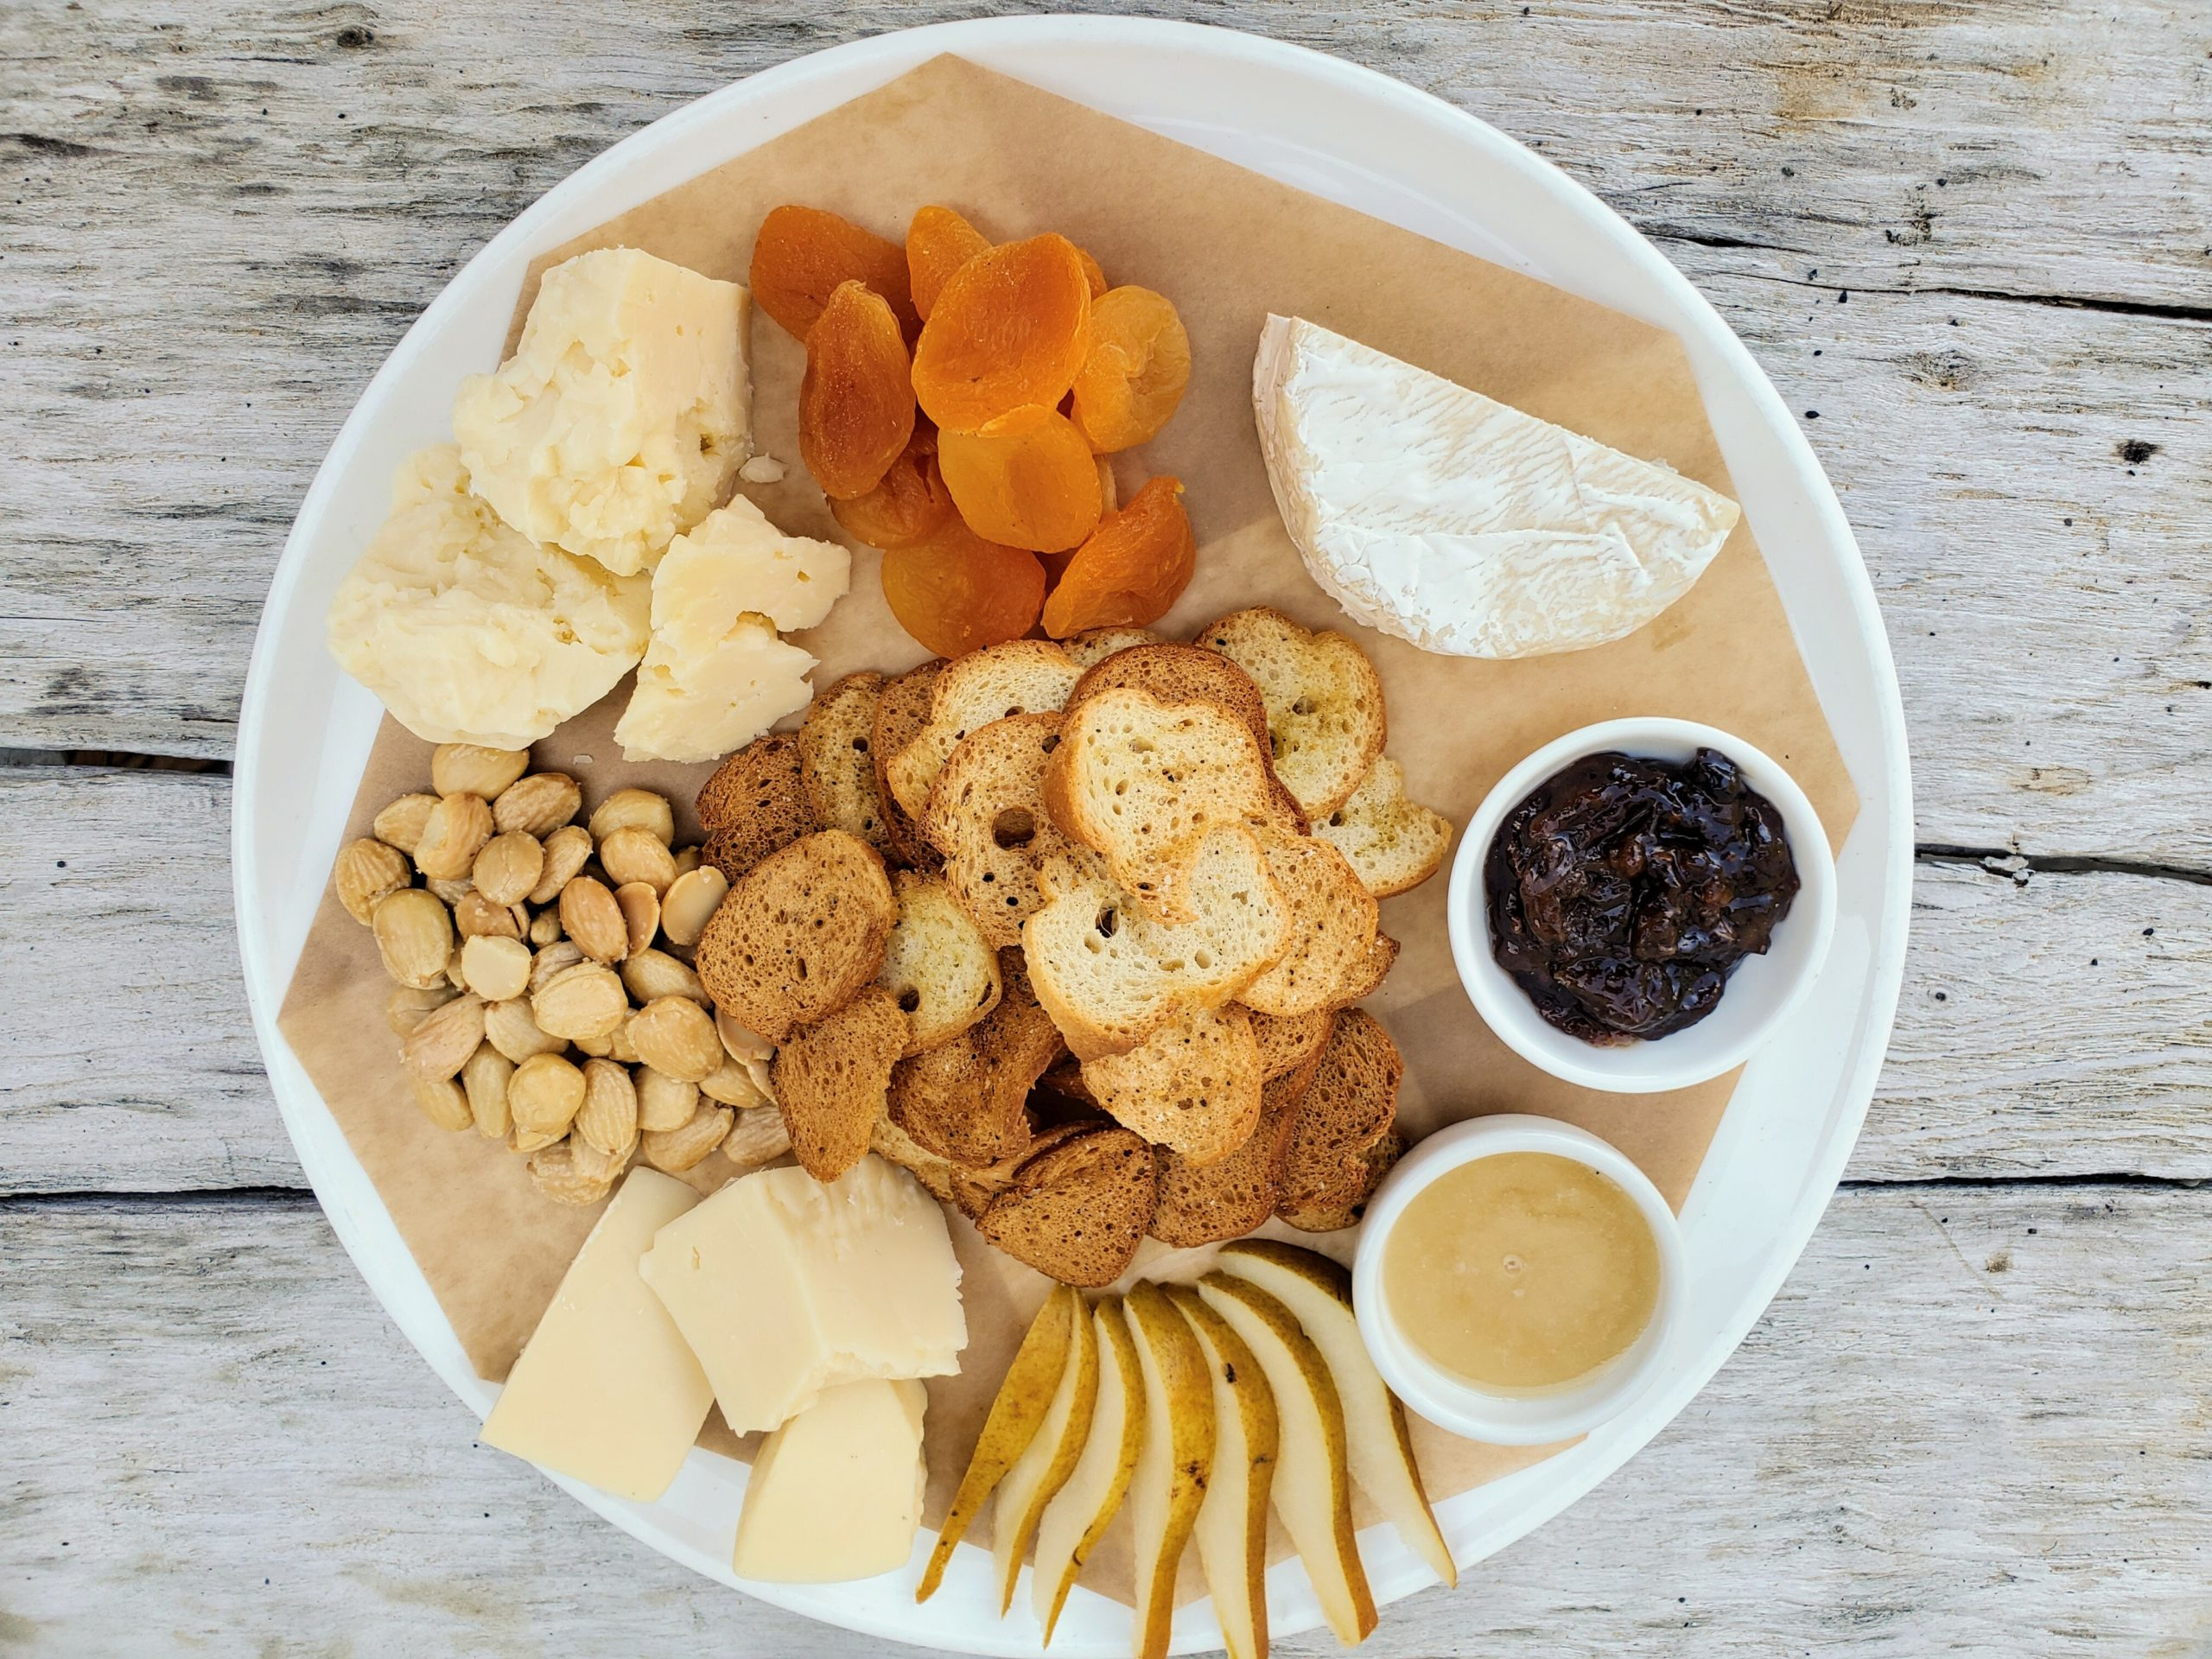 Nick & Toni's cheese board is available for Christmas Eve celebrations at home.